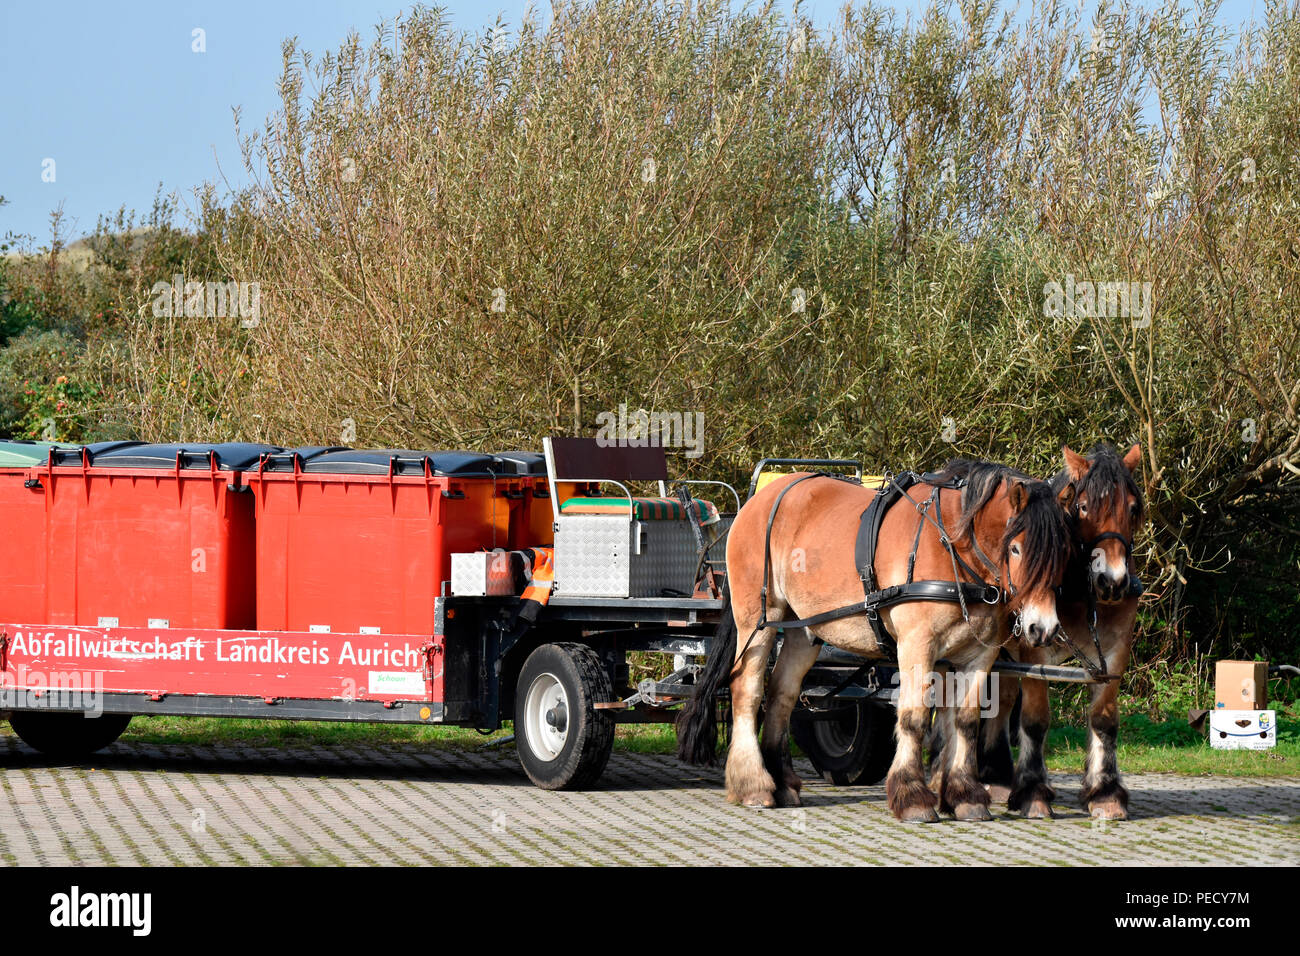 Team of Horses, rubbish collection, Juist, National Park Wadden Sea, Lower Saxony, East Frisian Island, Germany Stock Photo